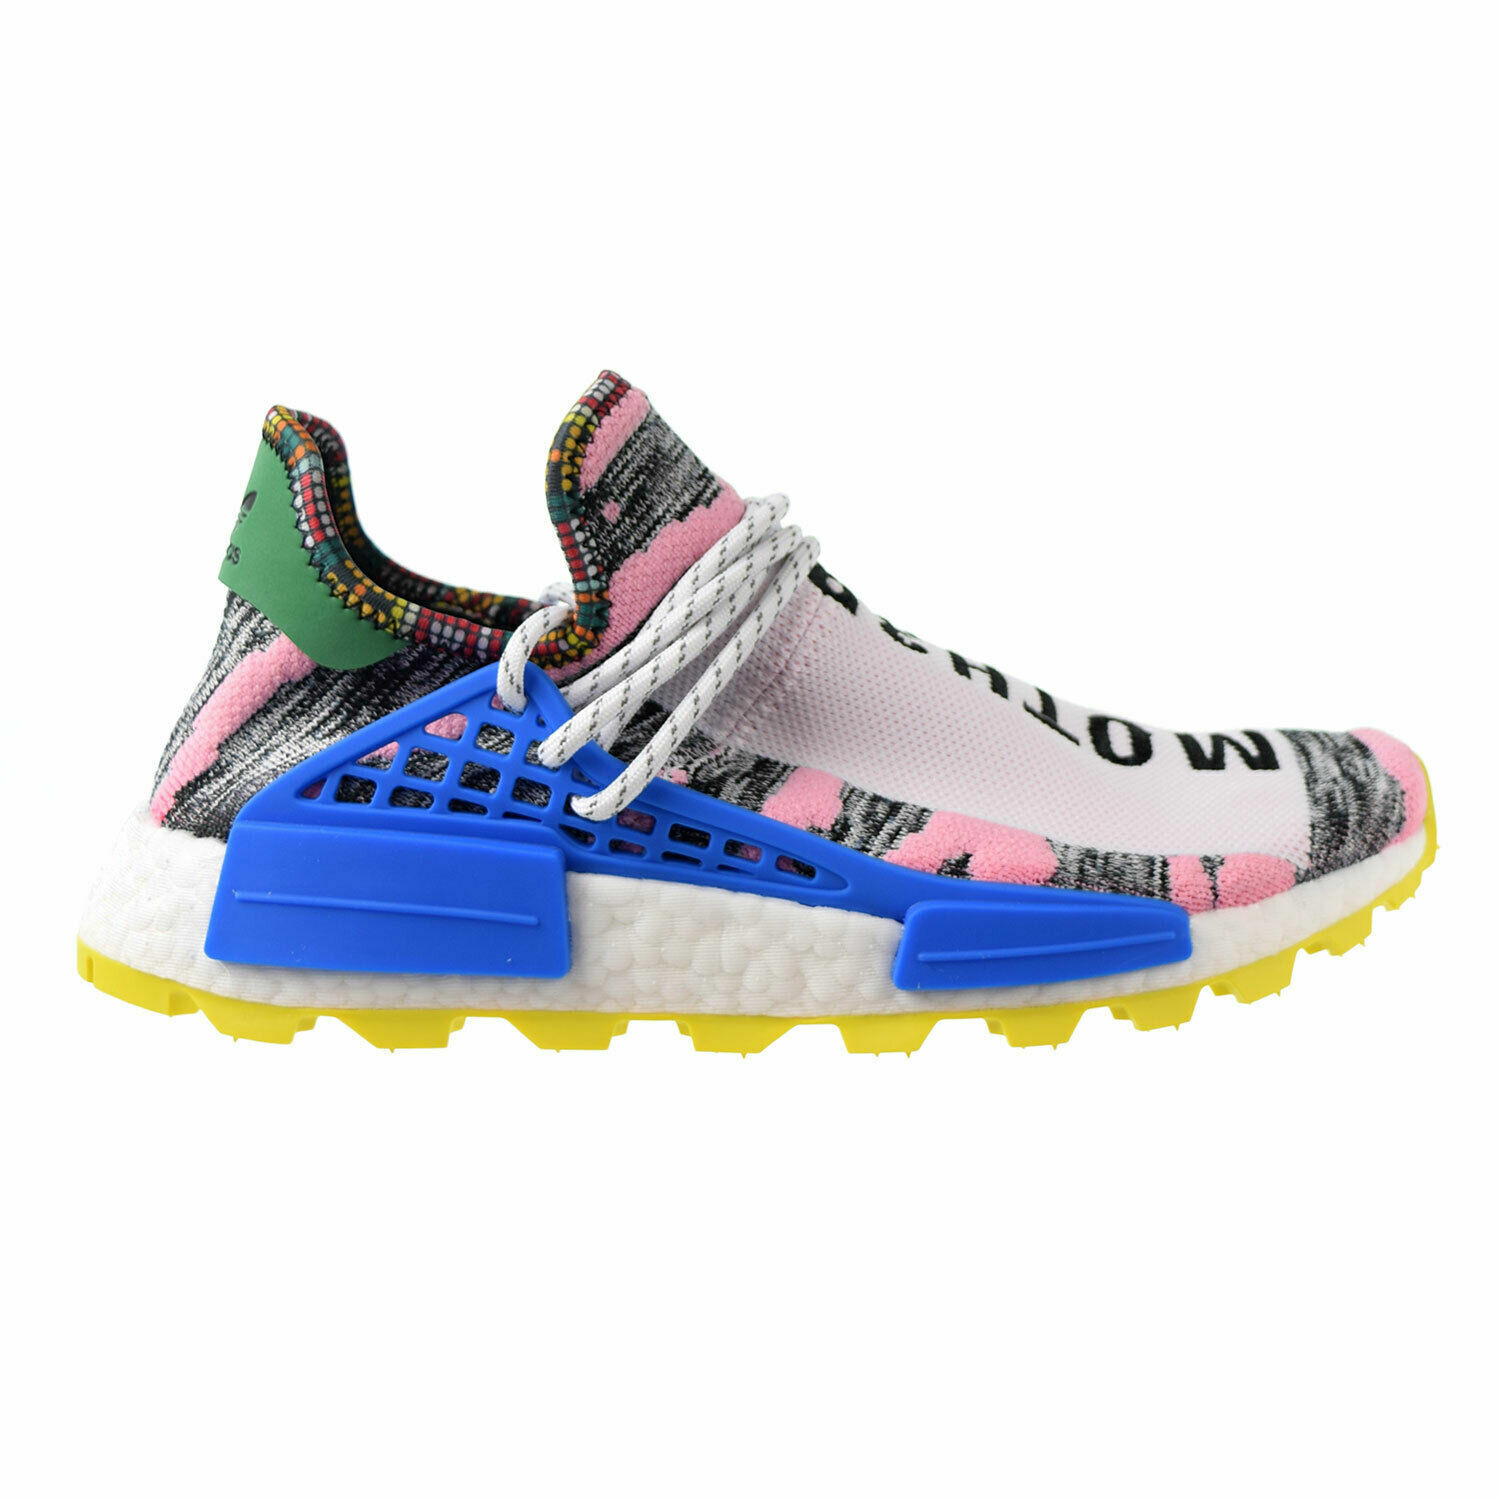 competitive price 9ffda 06417 {BB9531} Adidas x PW Solar Pack Hu NMD Pharrell Williams Human Race Mother  *NEW*